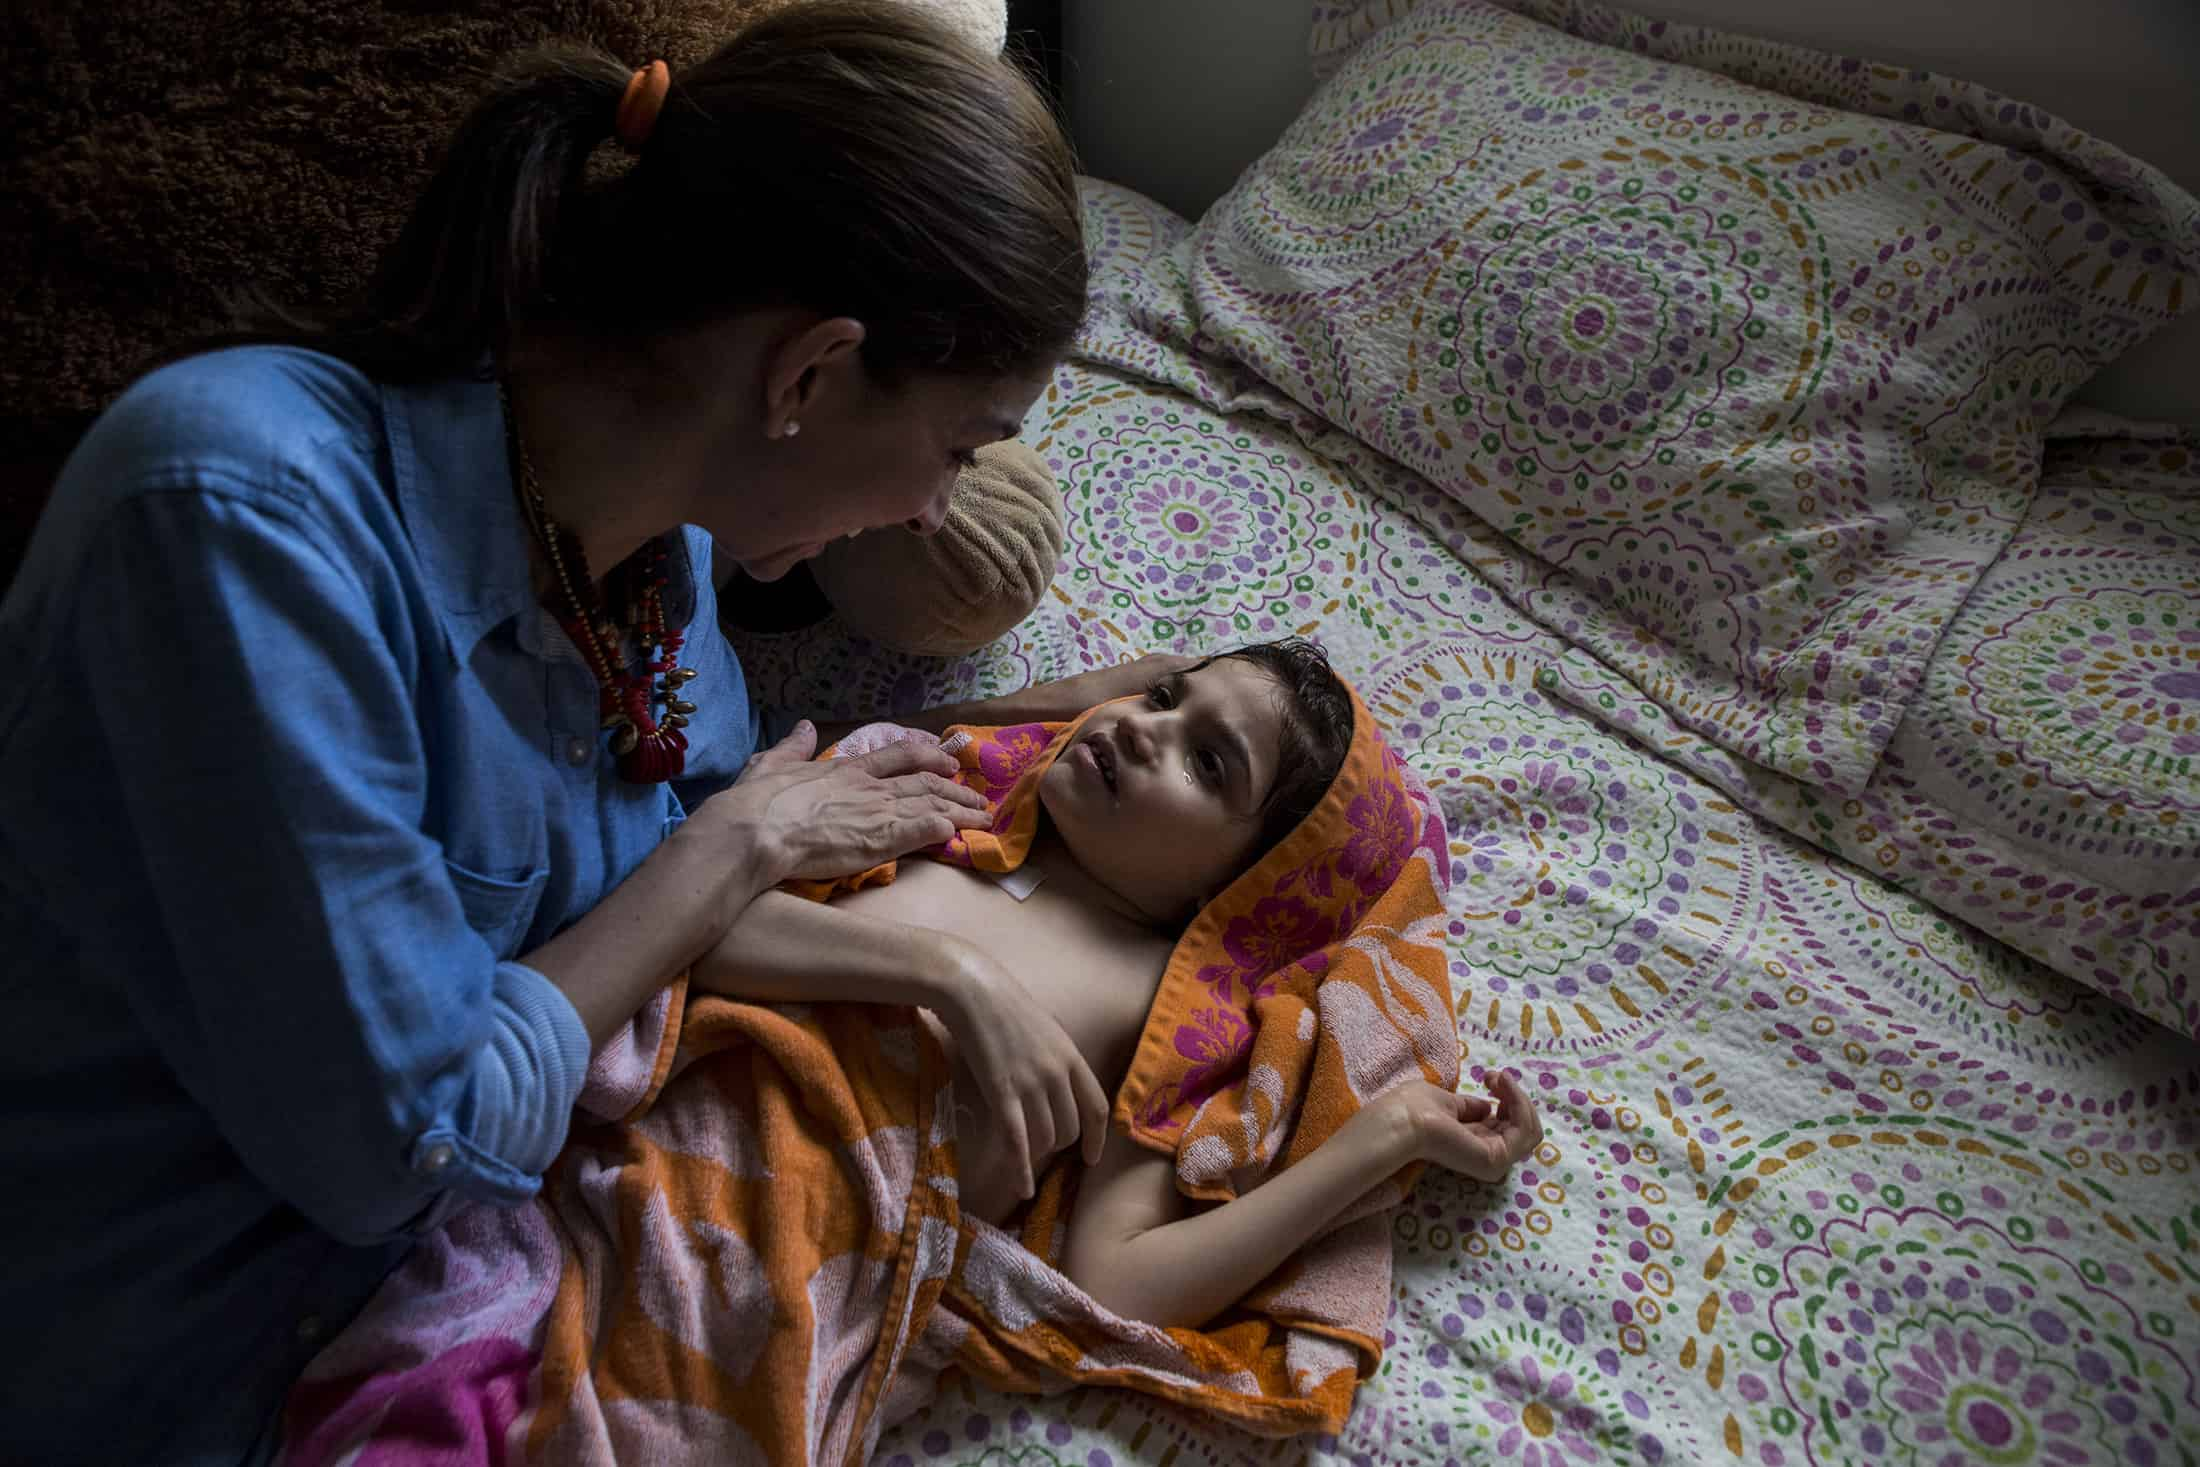 Mayela Benavides changes her daughter Grace after bathing her in their home in Monterrey, Mexico, on August 12, 2015.